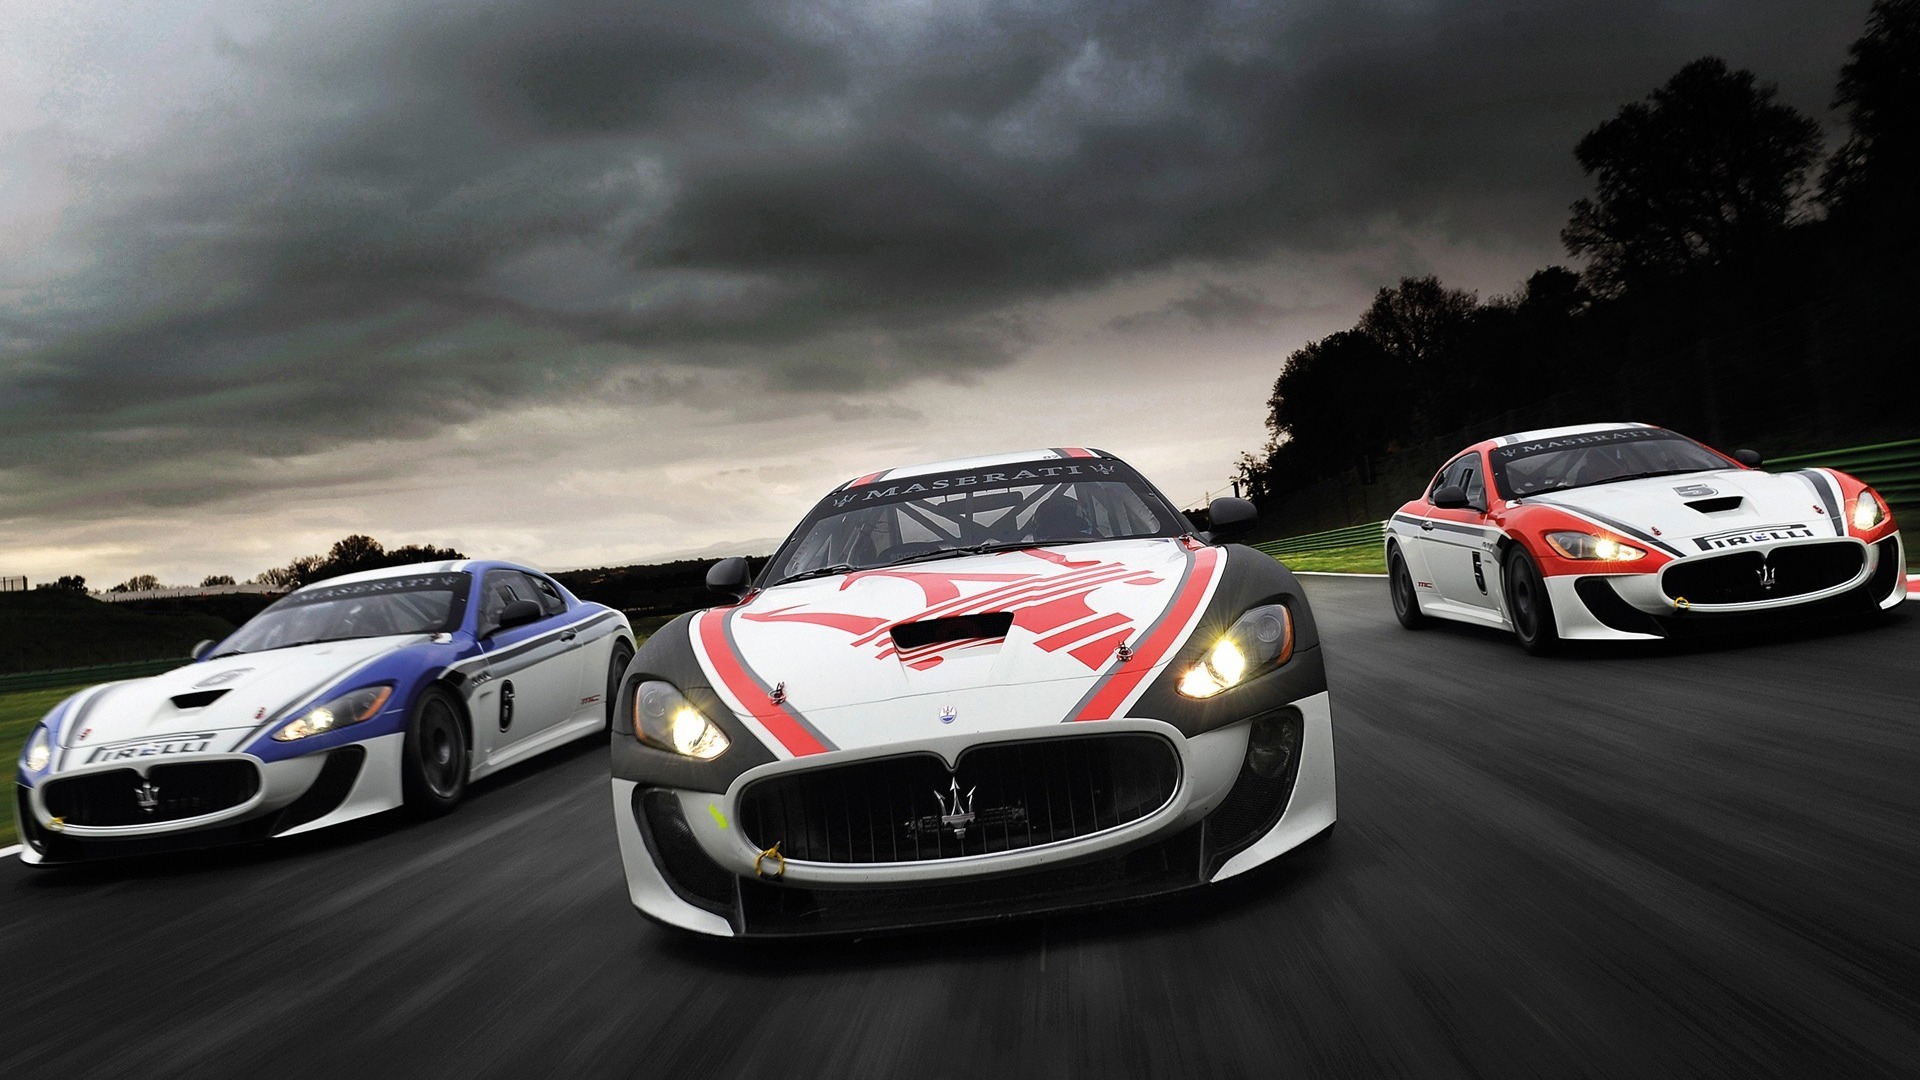 Maserati GranTurismo MC Stradale - 2010 HD wallpaper 11 - 1920x1080 ...